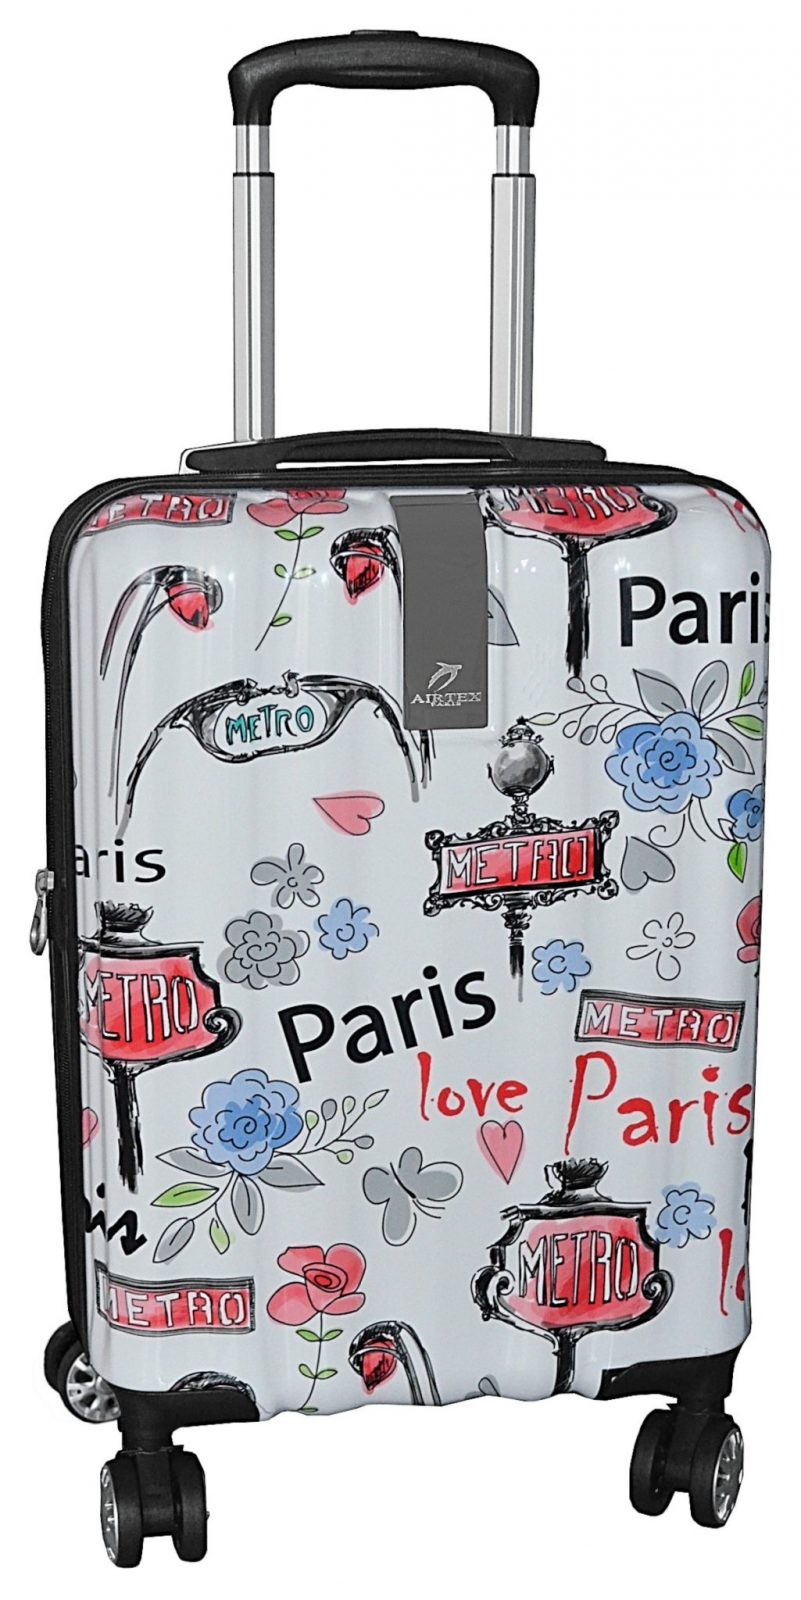 Bagages Airtex Paris Cher Valise Rigide Cabine Pas Love 7gY6yfvb